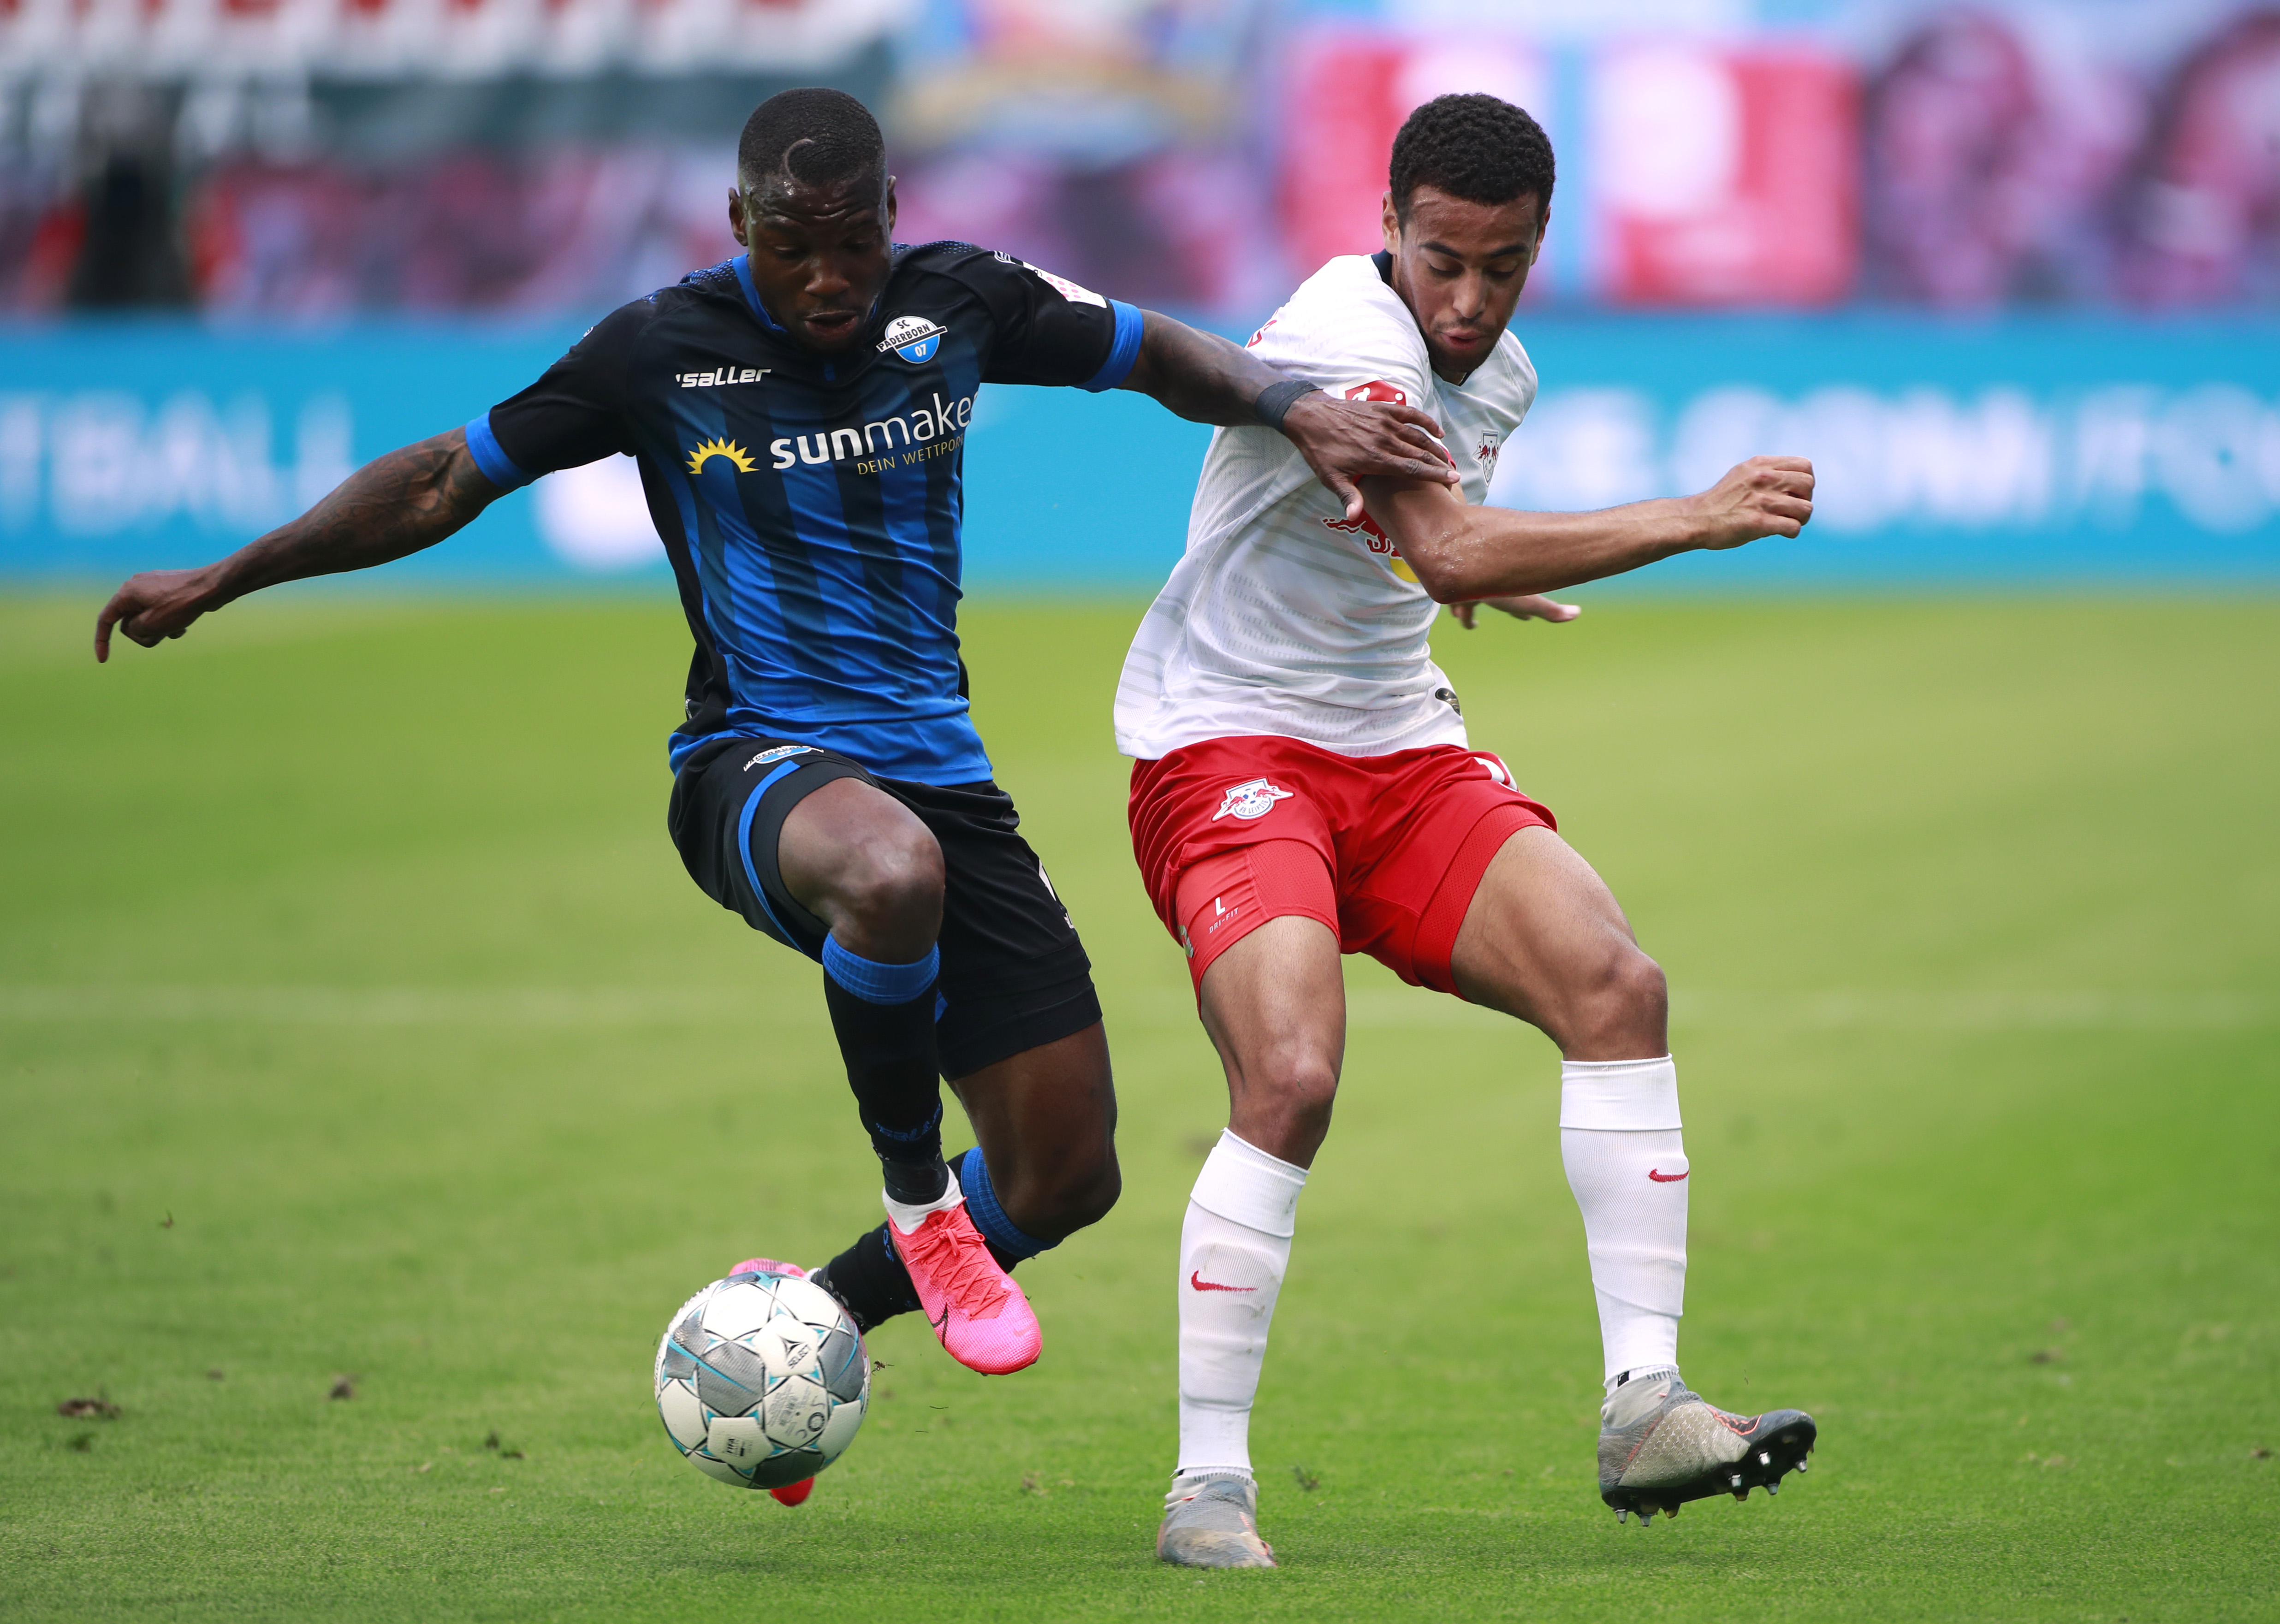 Uefa Champions League In Reach For Several U S Soccer Players In Bundesliga The Washington Post